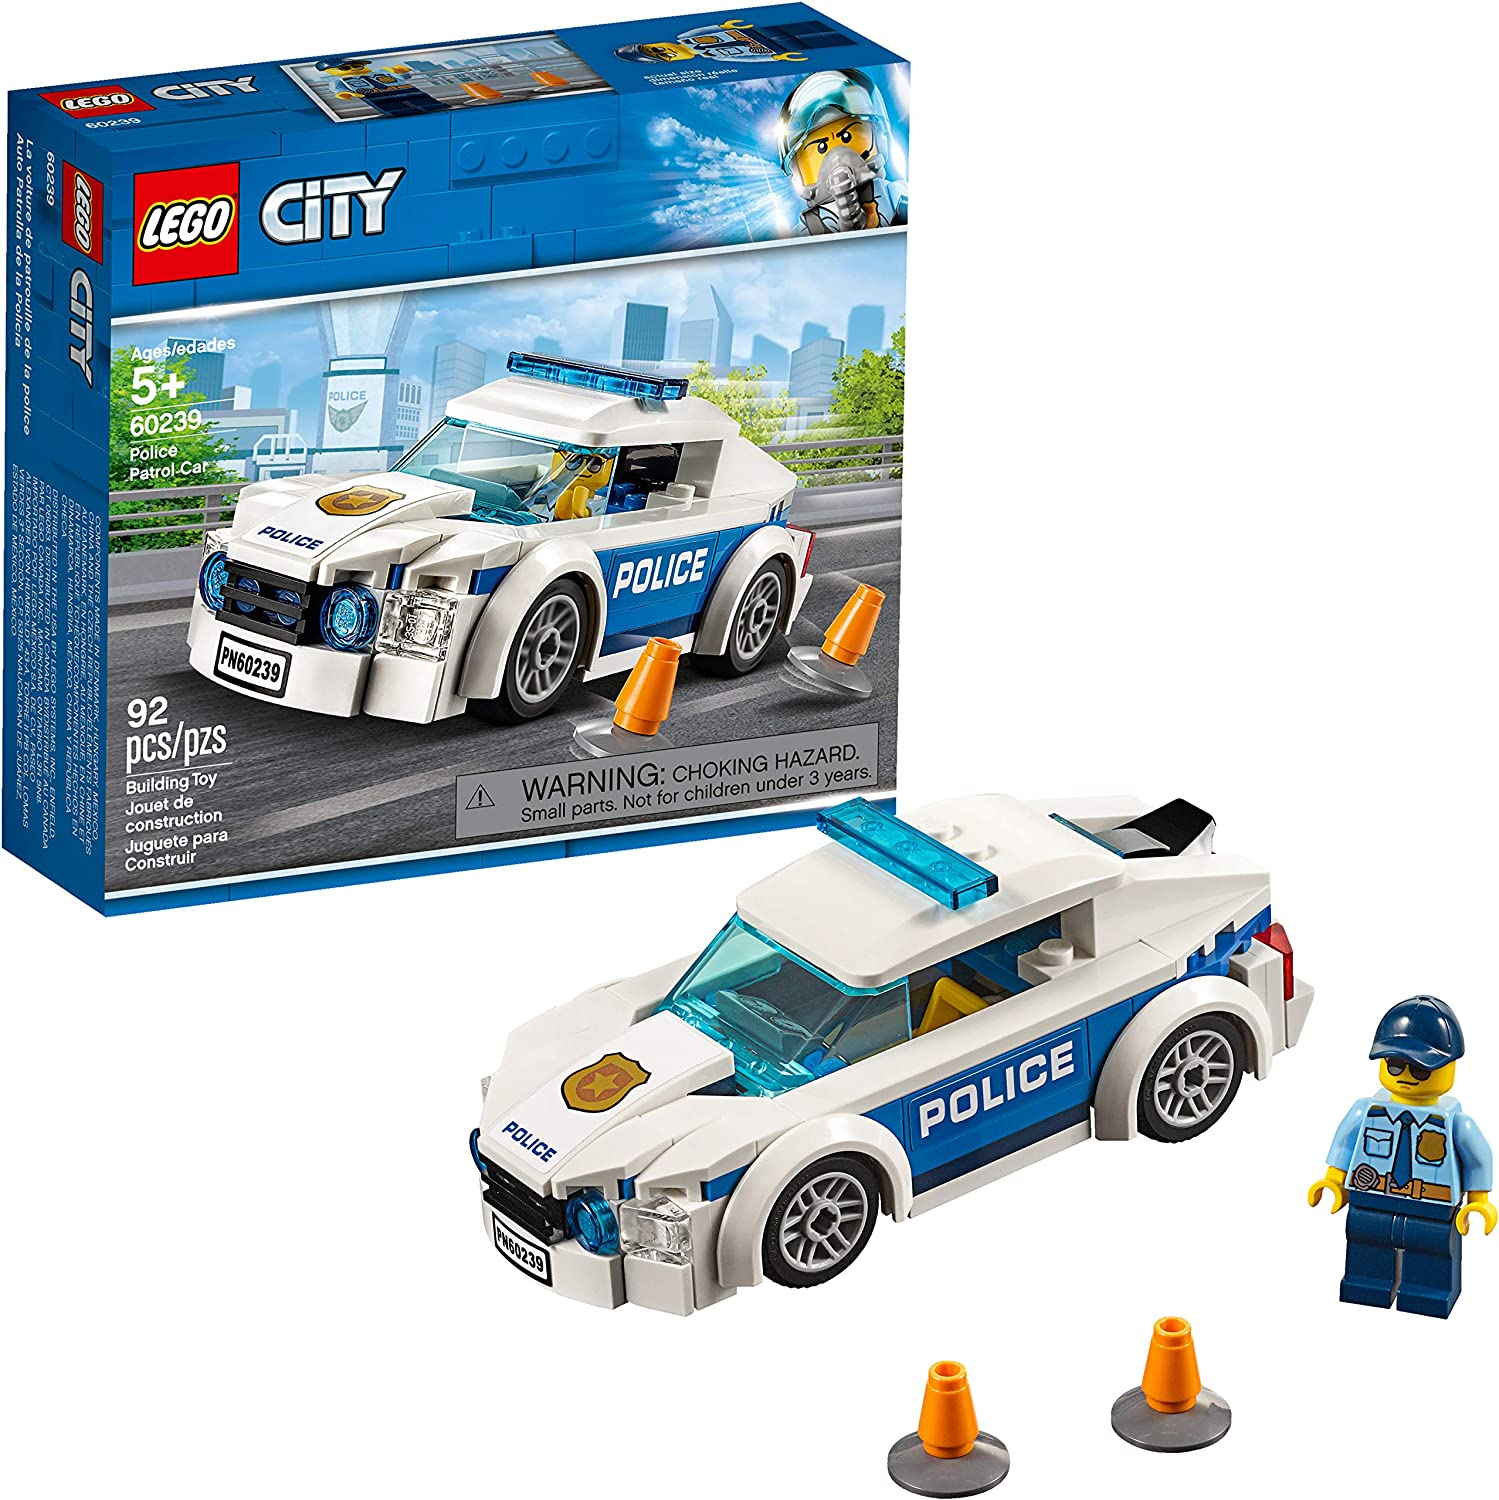 Amazon Com Lego City Police Patrol Car 60239 Building Kit 92 Pieces Toys Games